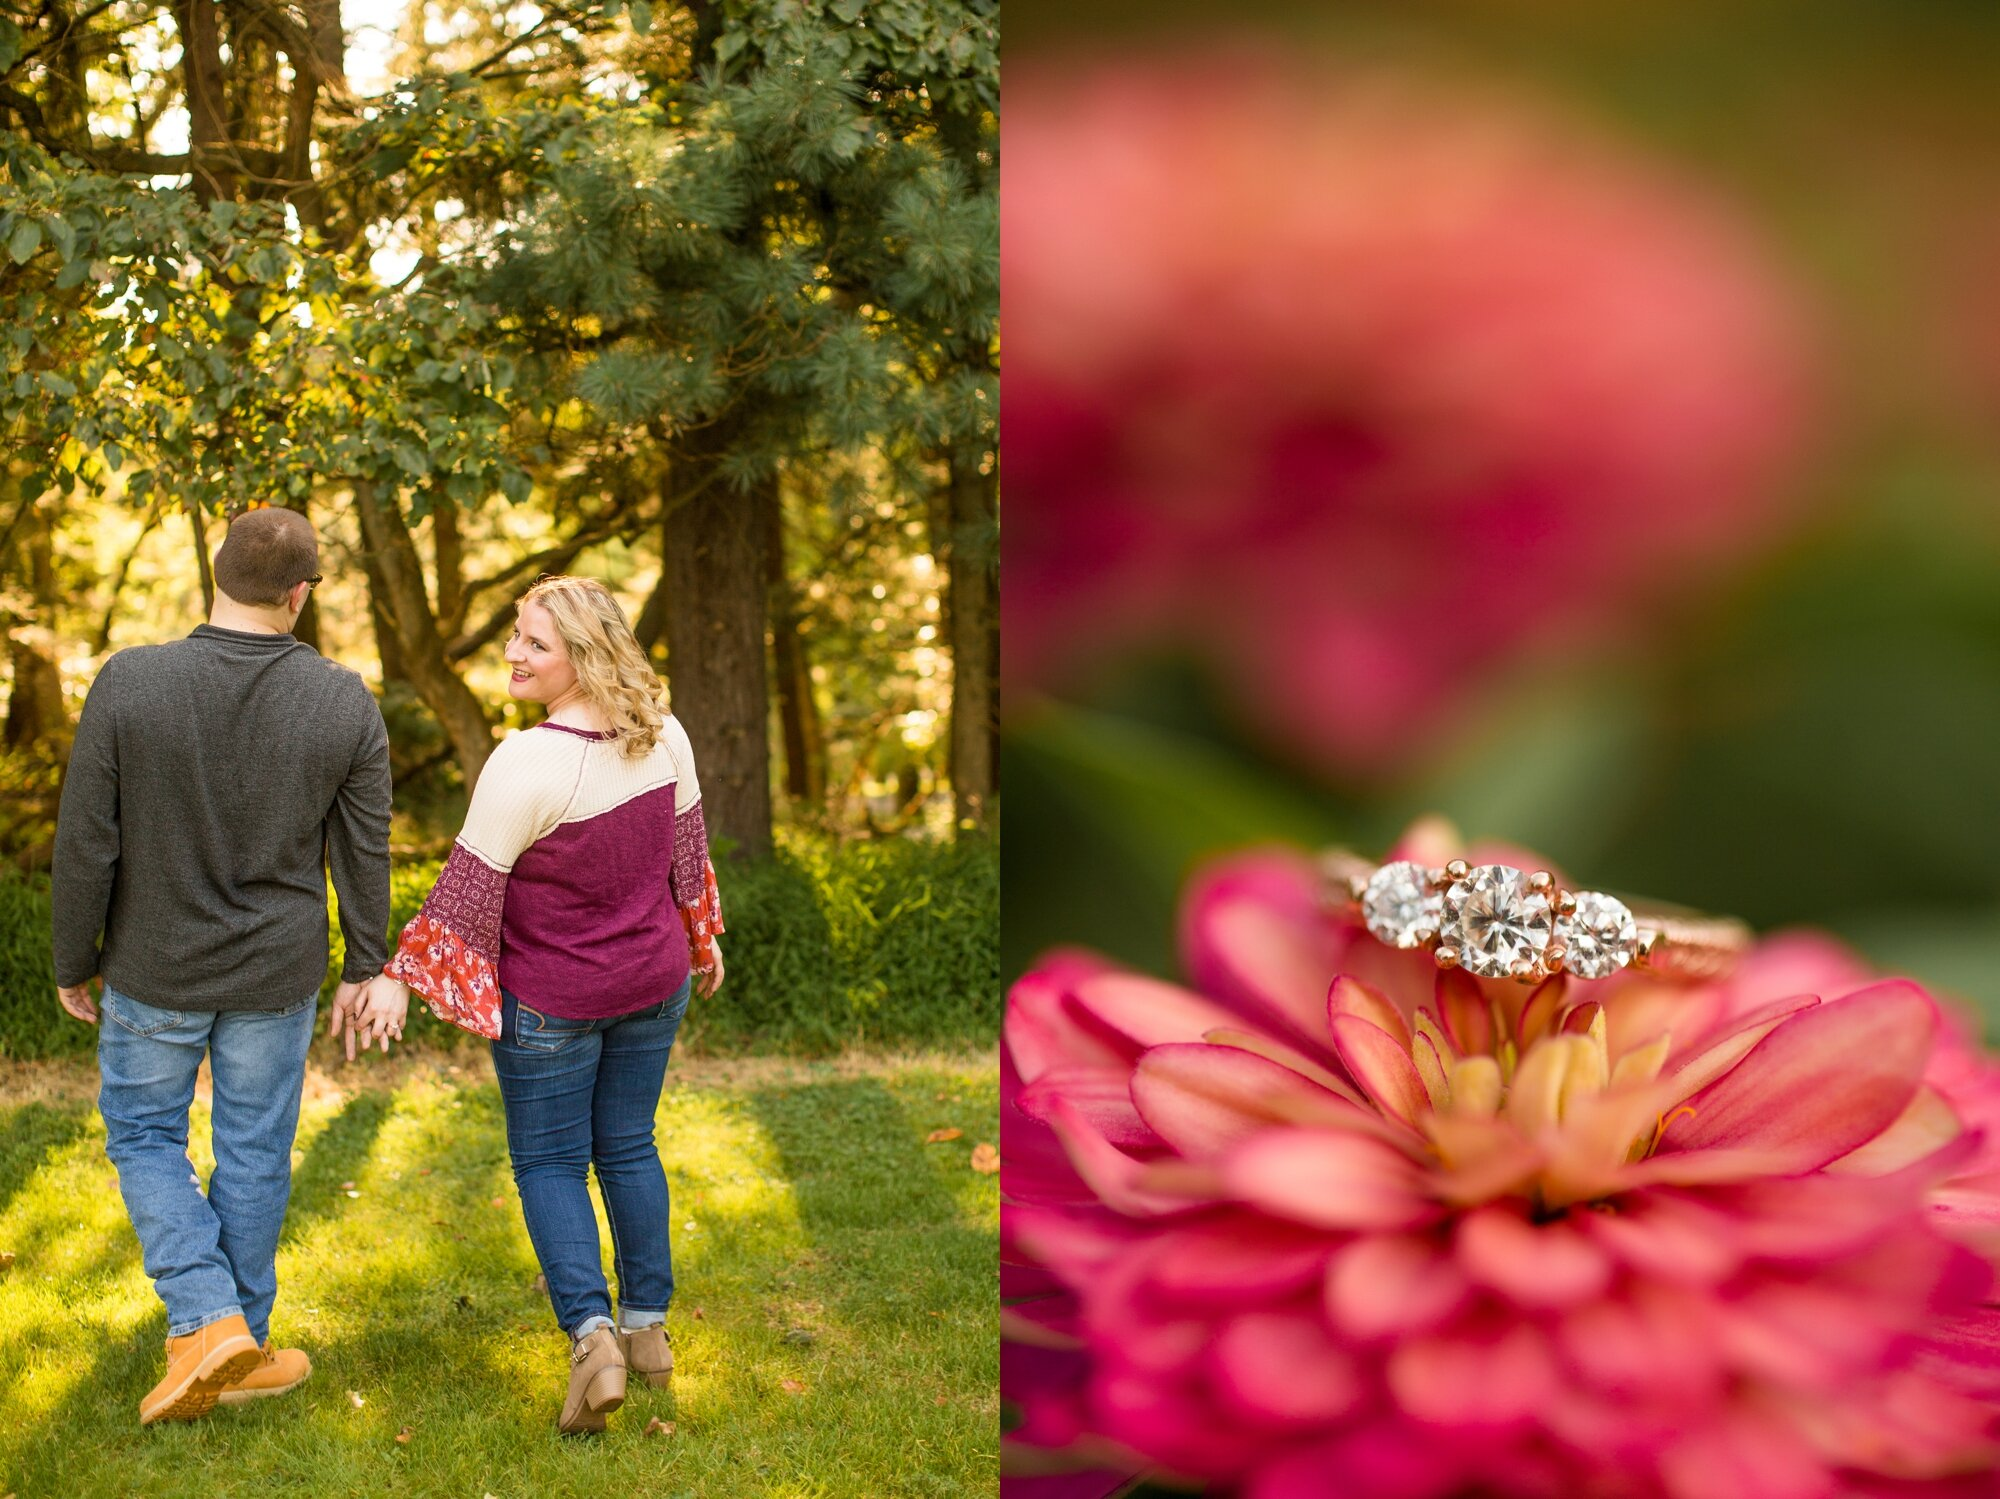 hartwood acres engagement photos, pittsburgh wedding photographer, pittsburgh engagement photographer, pittsburgh proposal photographer